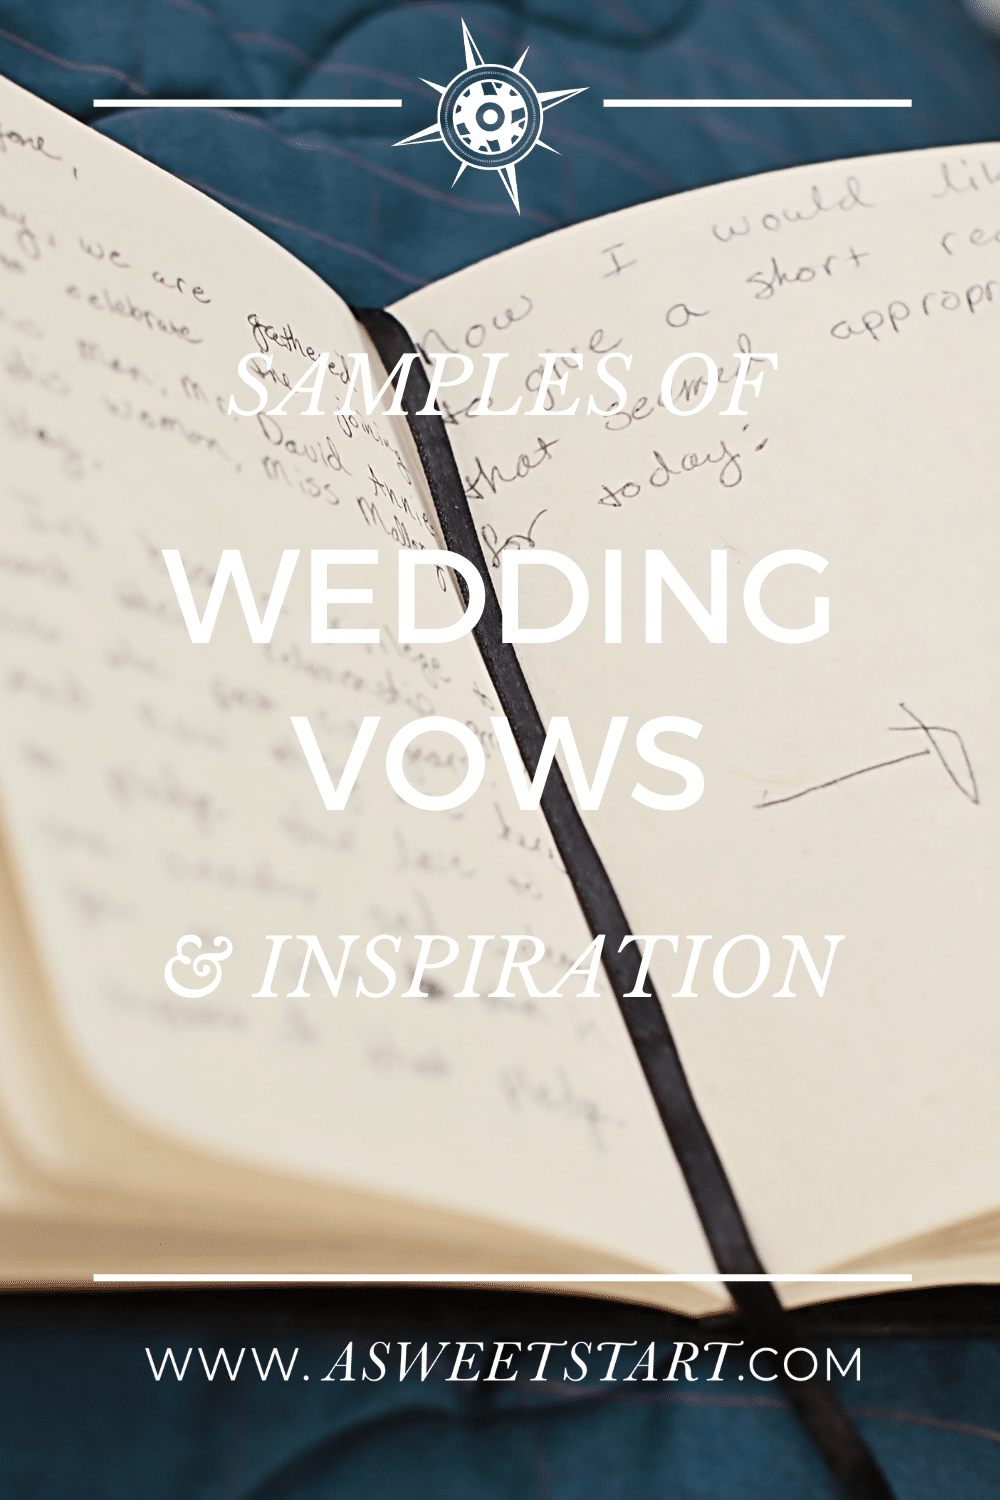 Personal wedding vows inspiration and samples